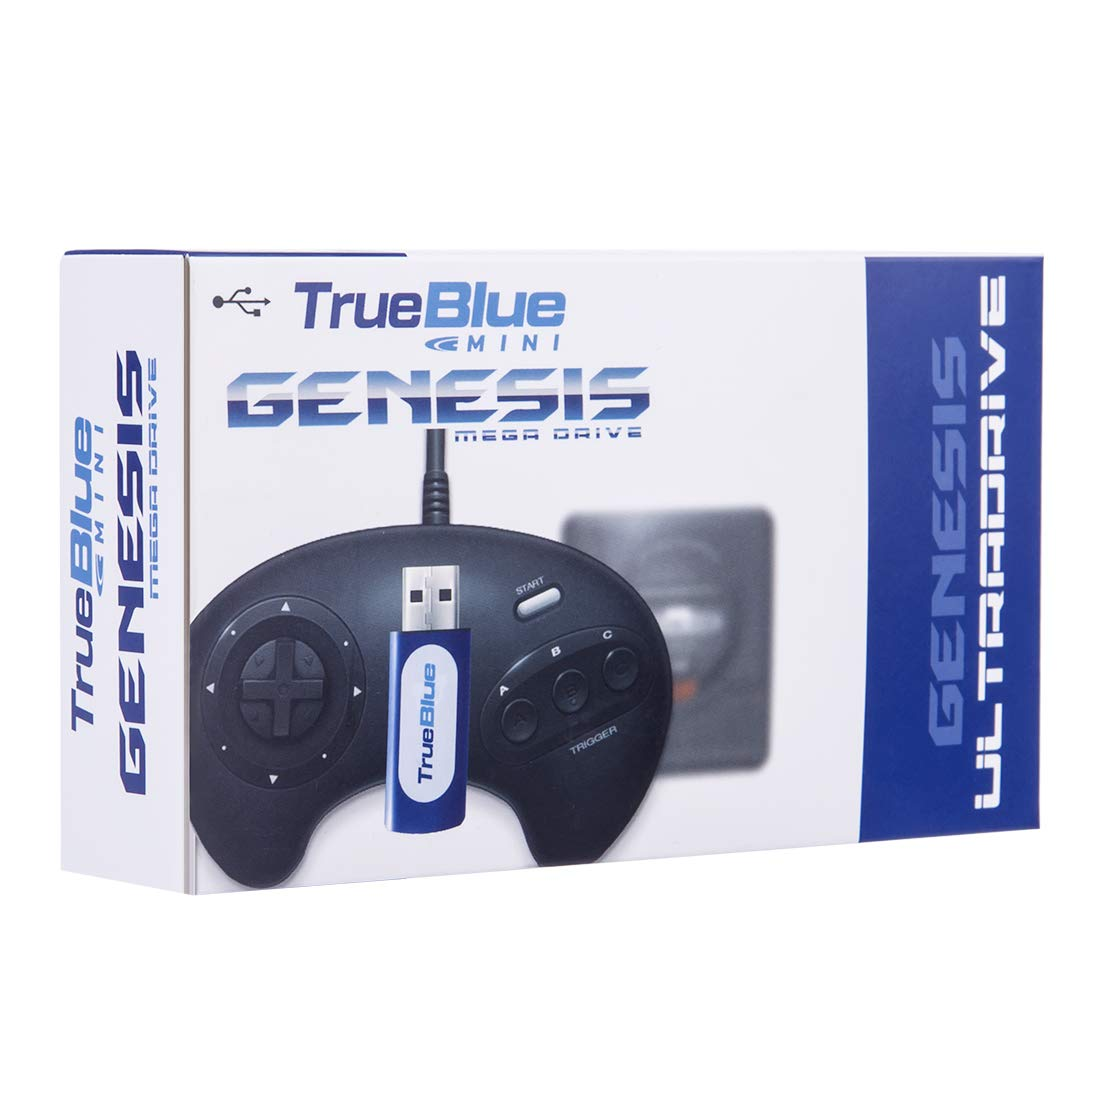 Petforu True Blue Mini Ultradrive Pack 813 Games for Sega Genesis /Mega Drive Mini